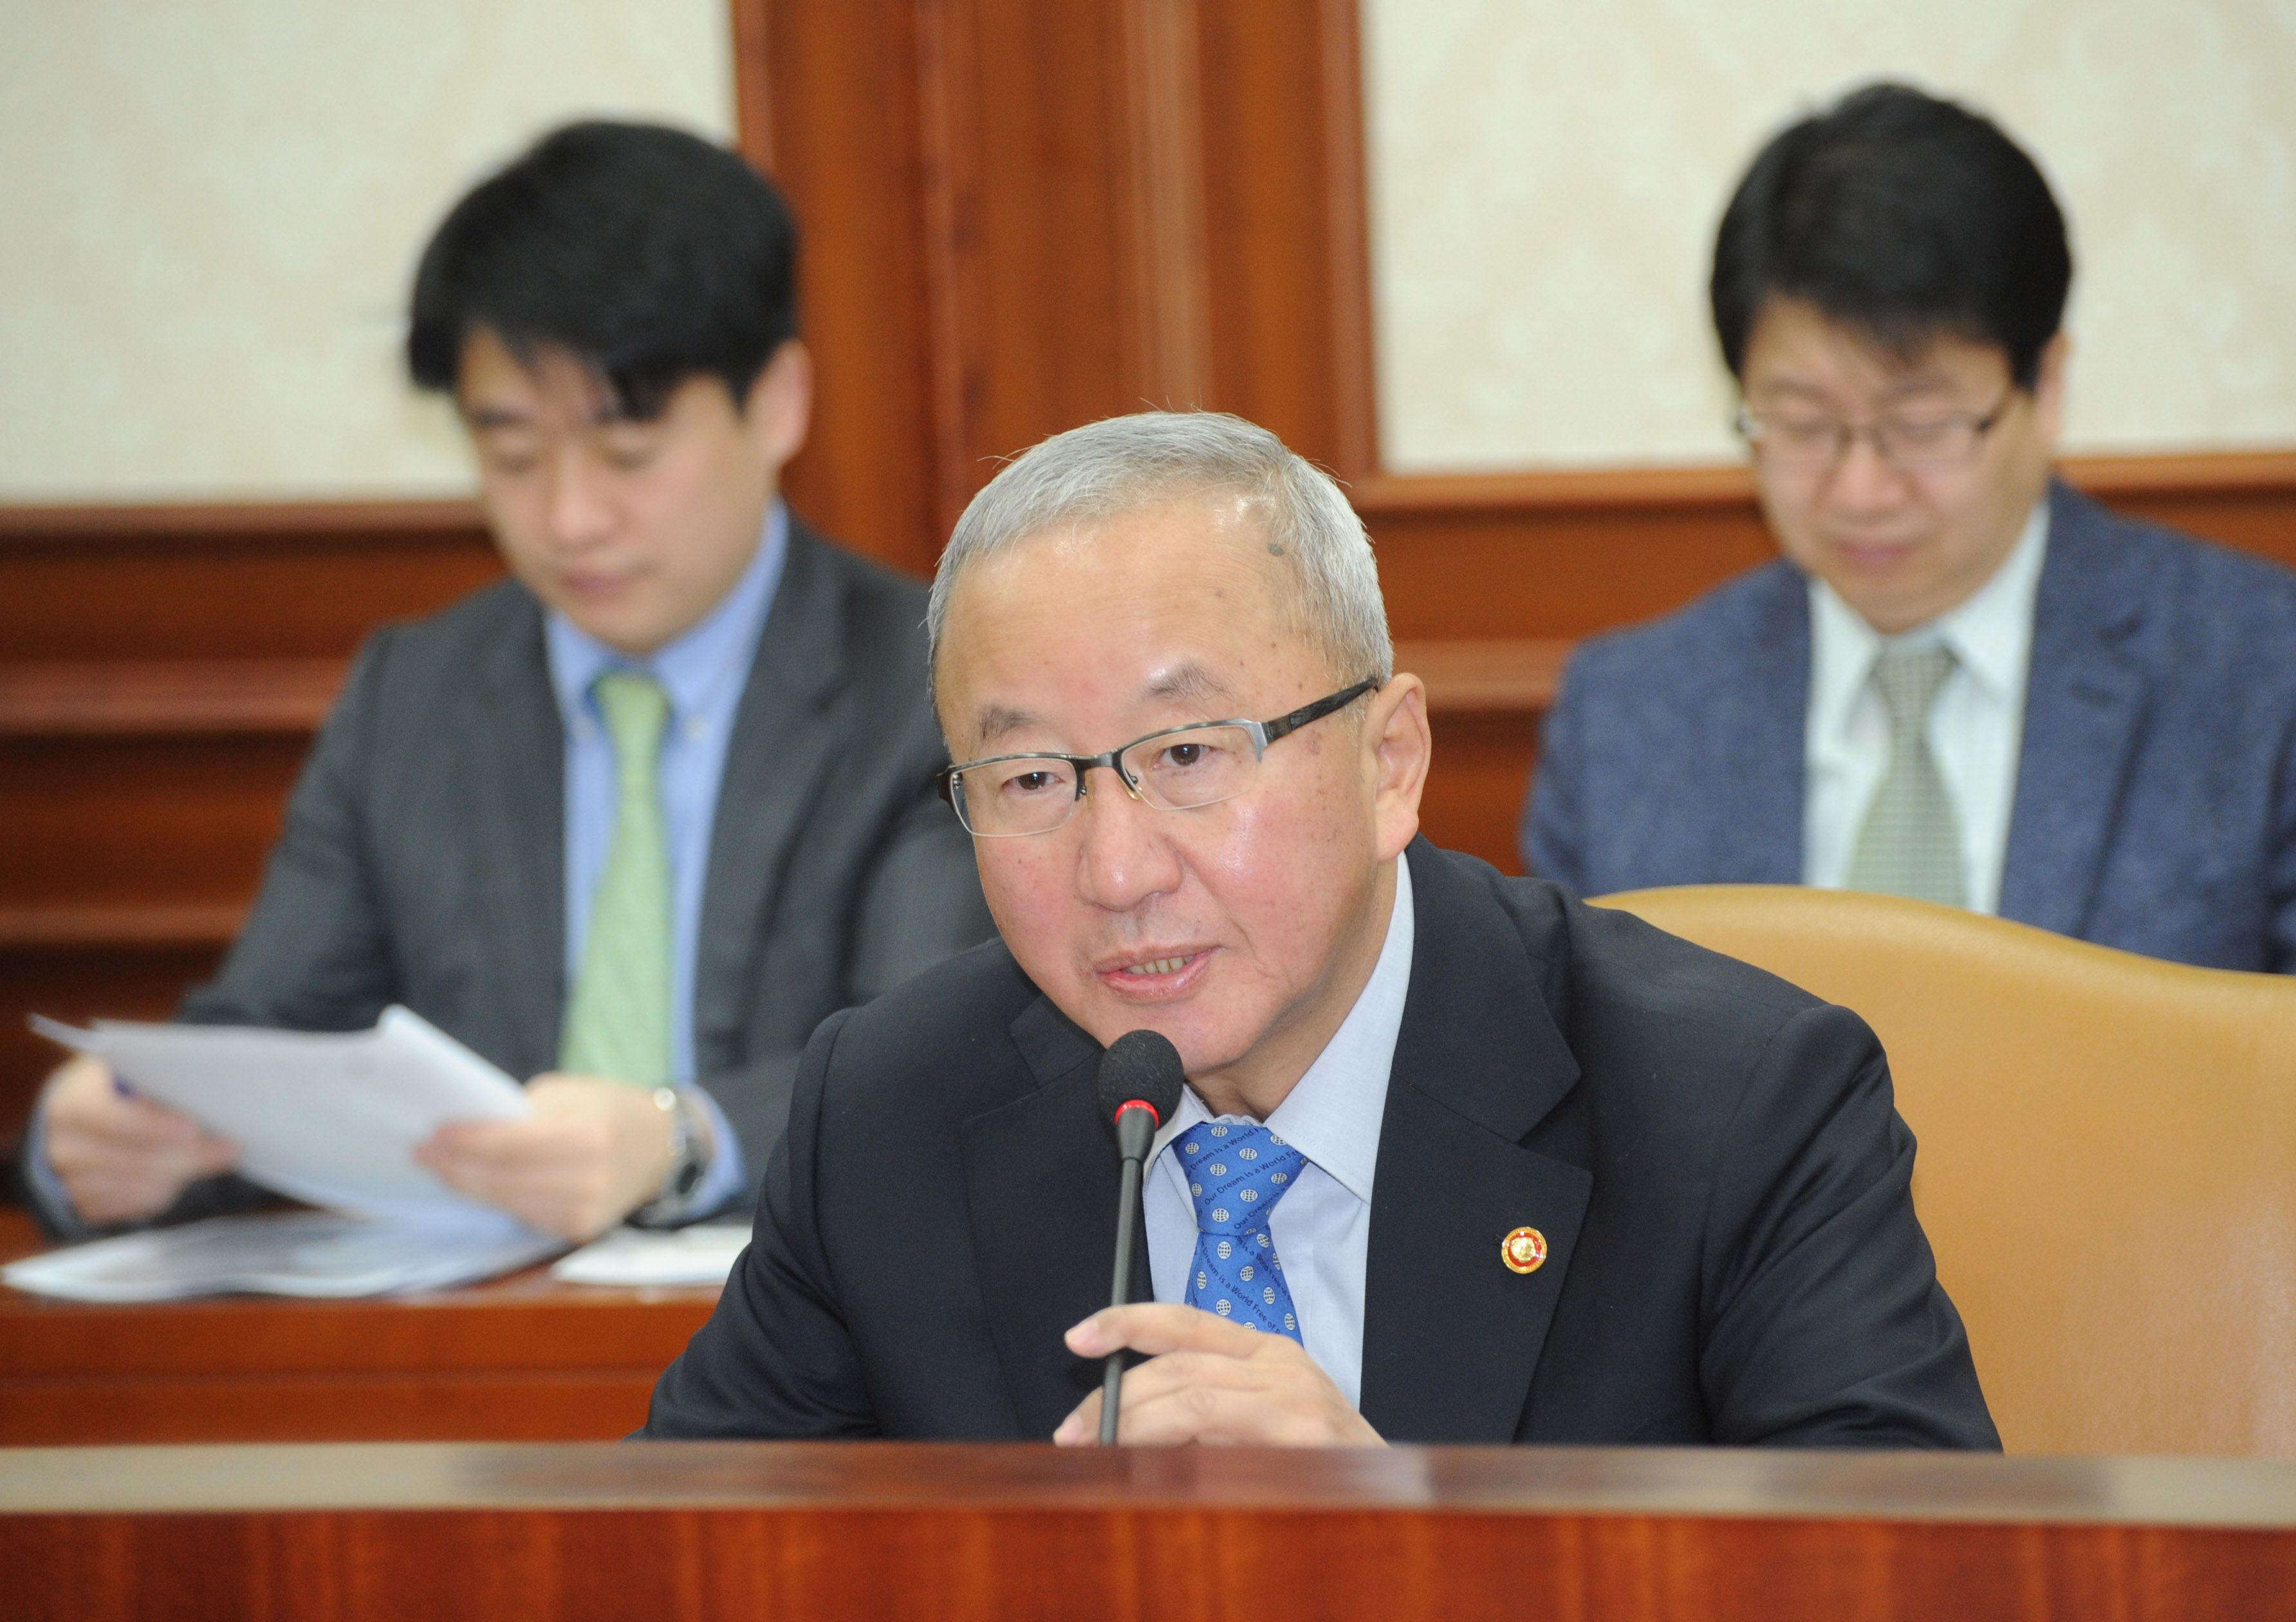 Deputy Prime Minister Hyun hosts the Ministerial Meeting on the Economy